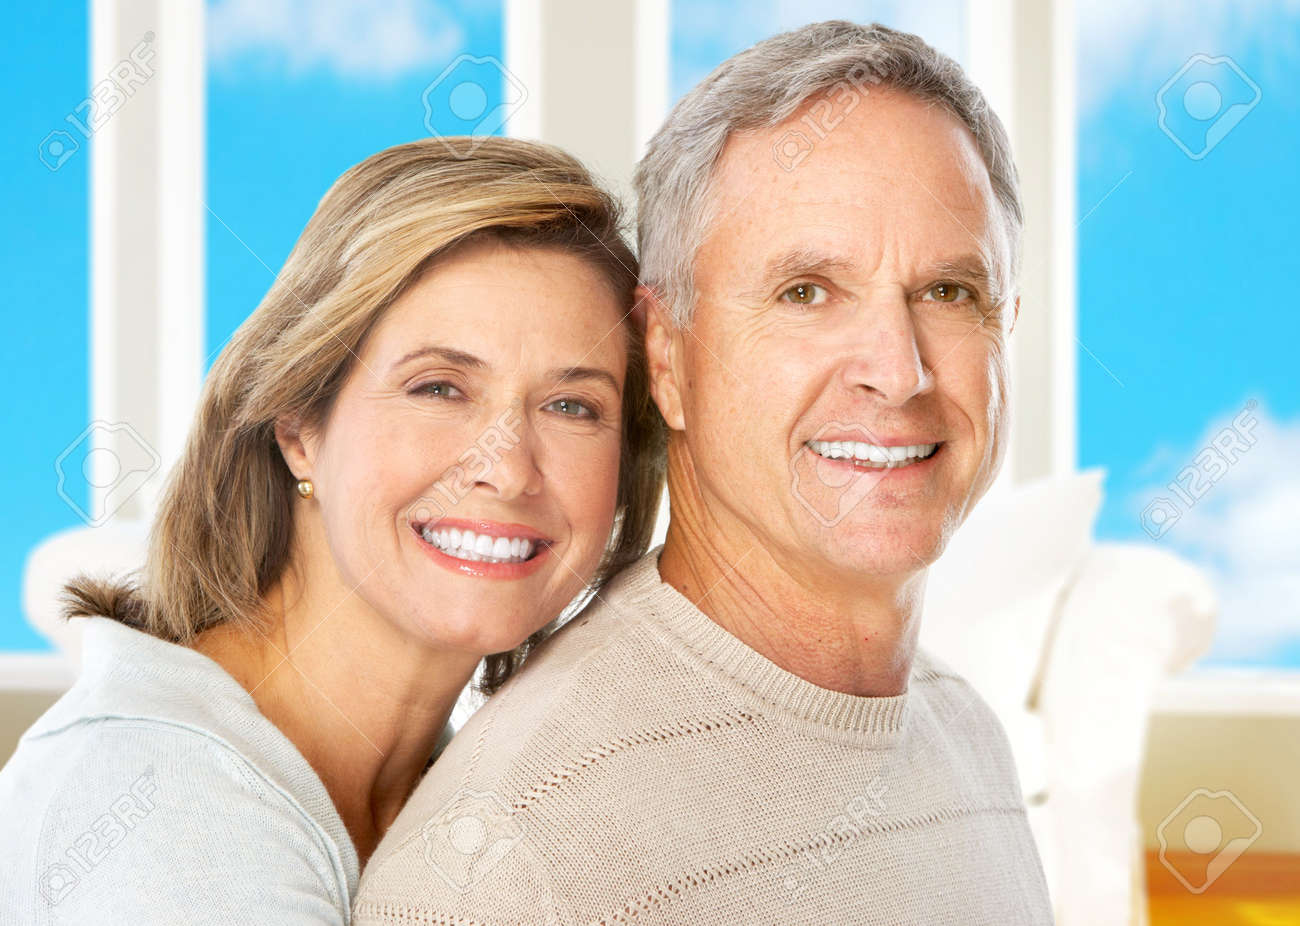 Happy smiling elderly couple at home Stock Photo - 5849612